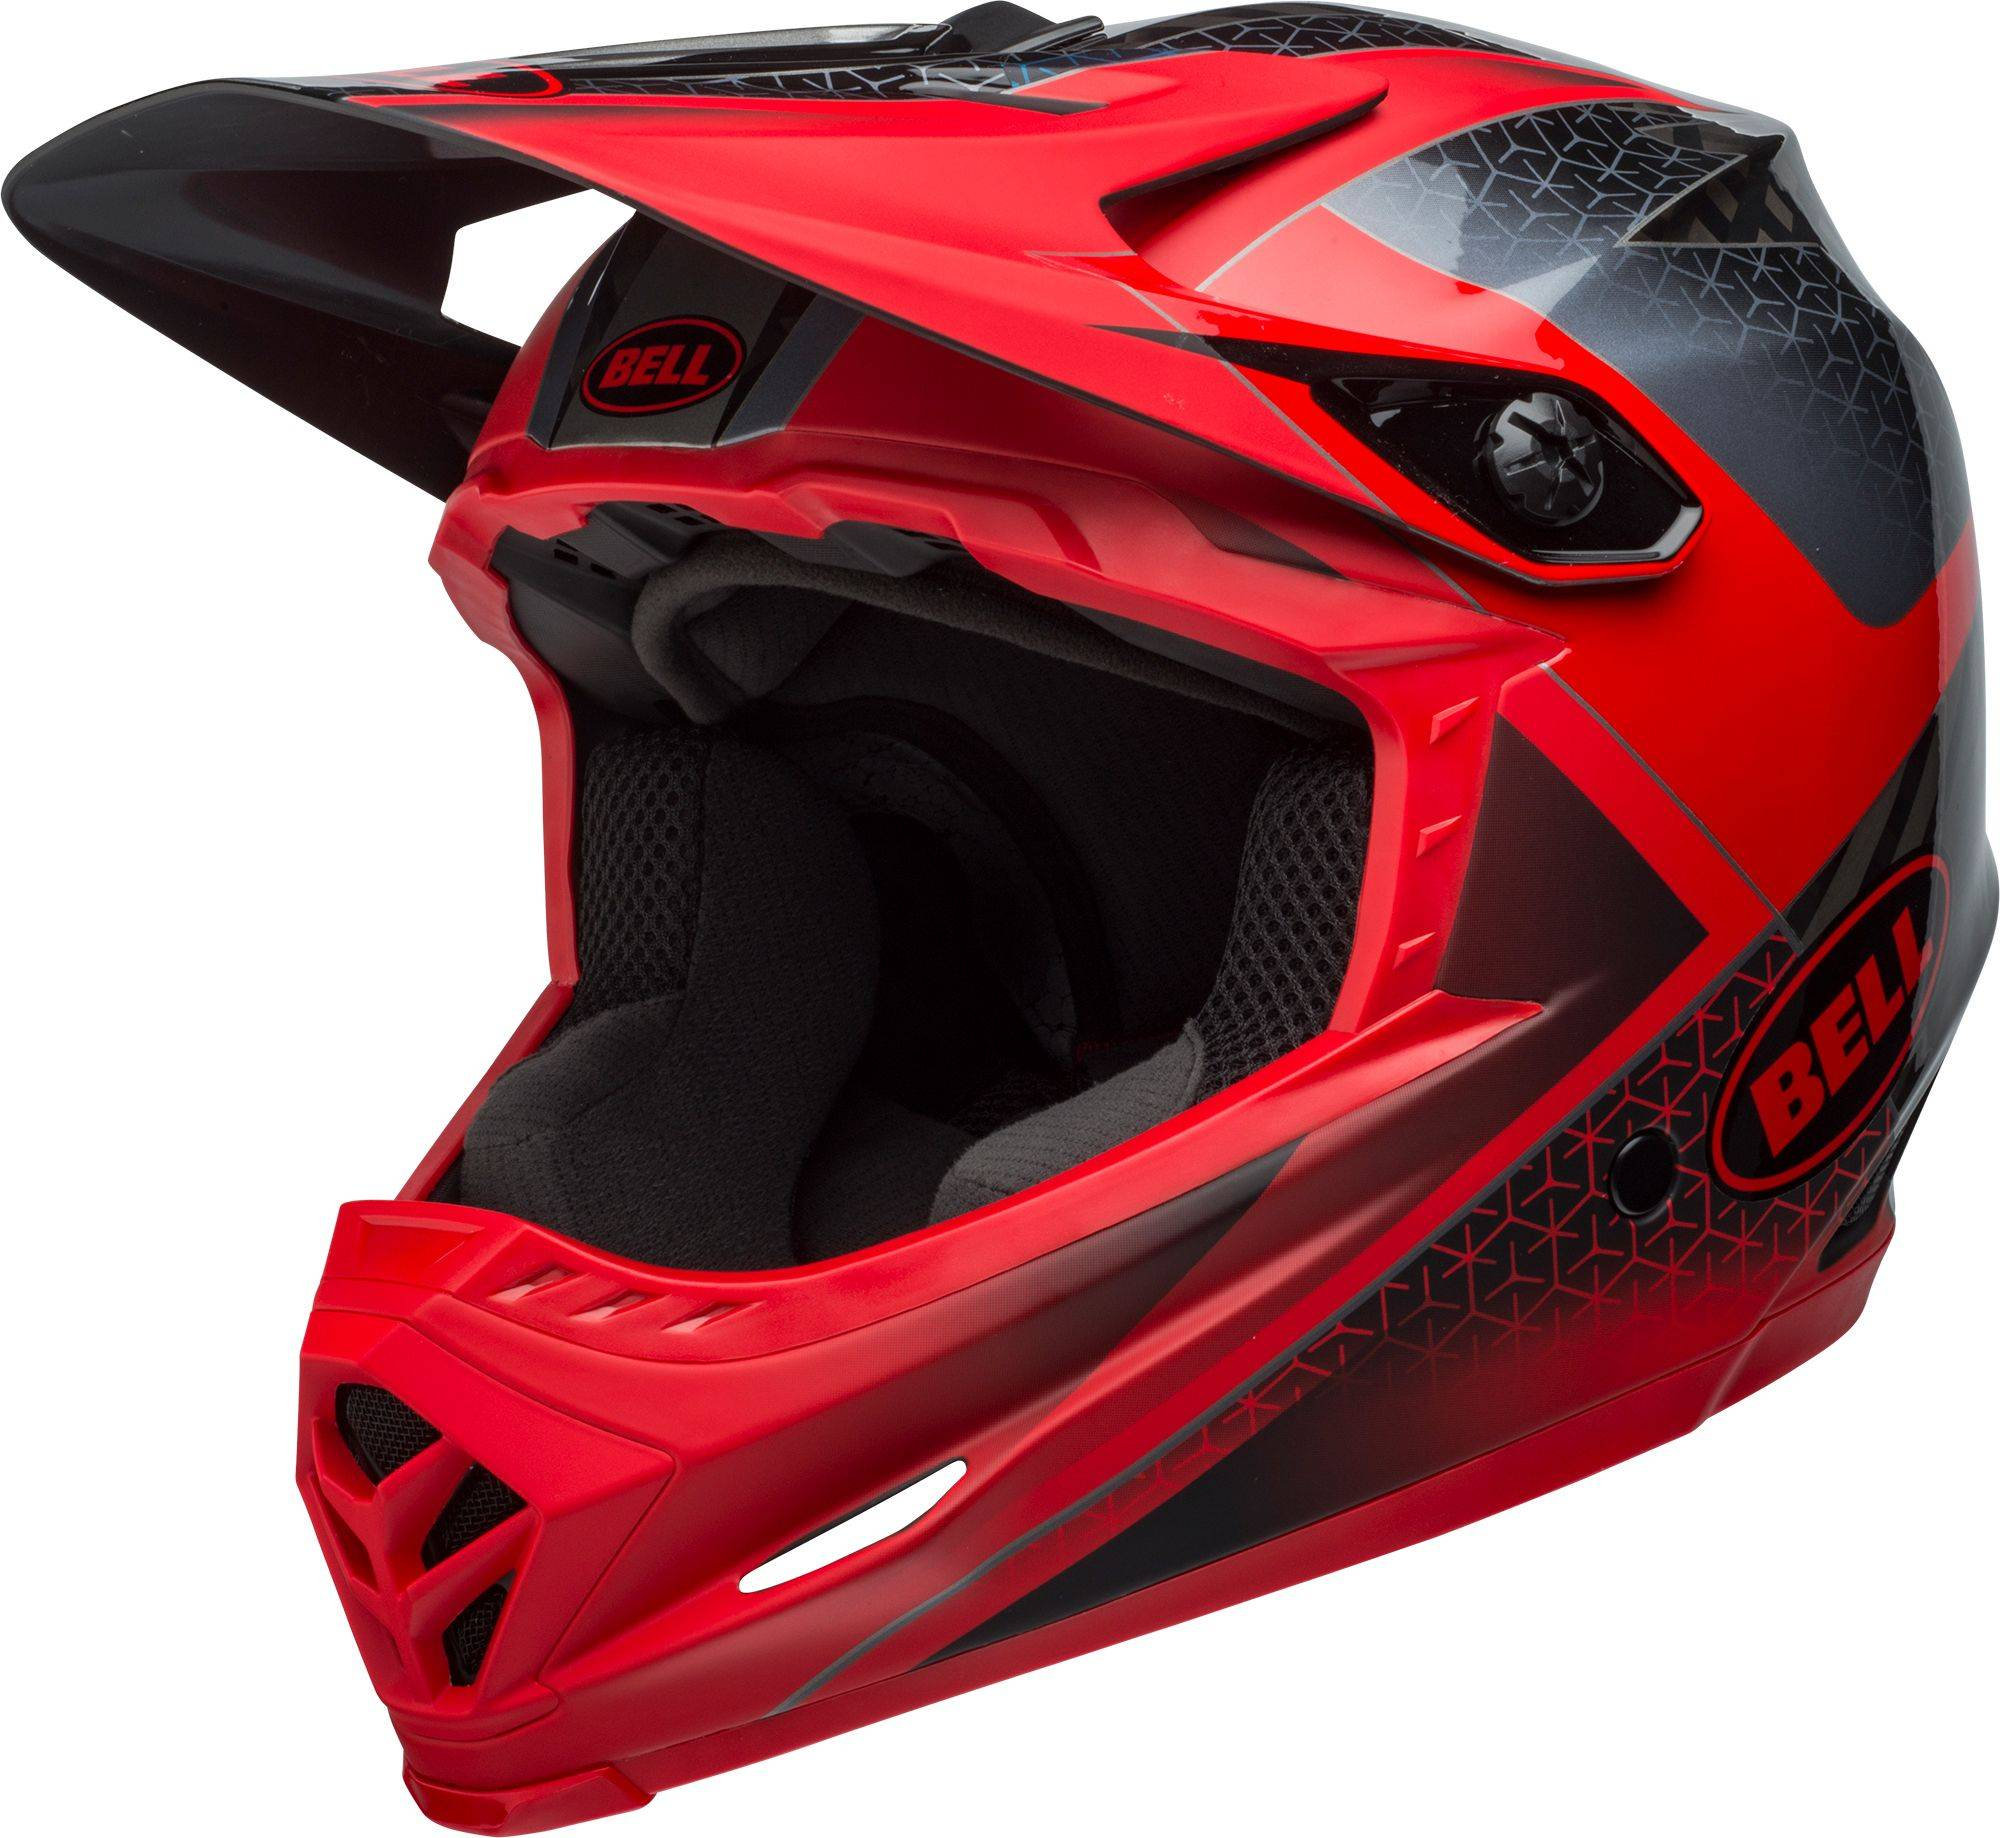 Bell Adult Full-9 Bike Helmet, XS/S, Crimson/Black/White